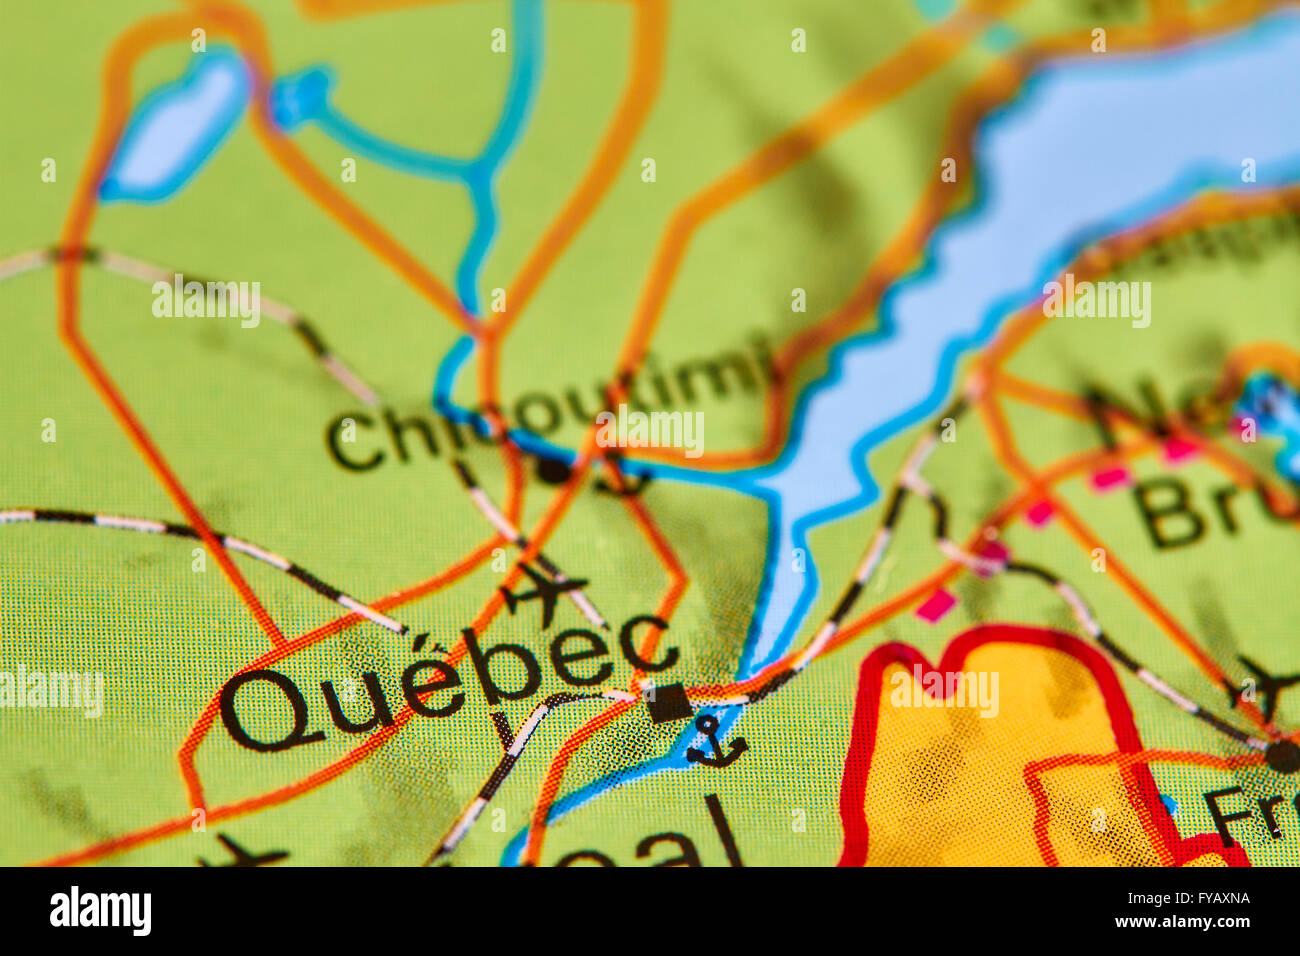 Quebec City in Canada on the World Map Stock Photo Royalty Free